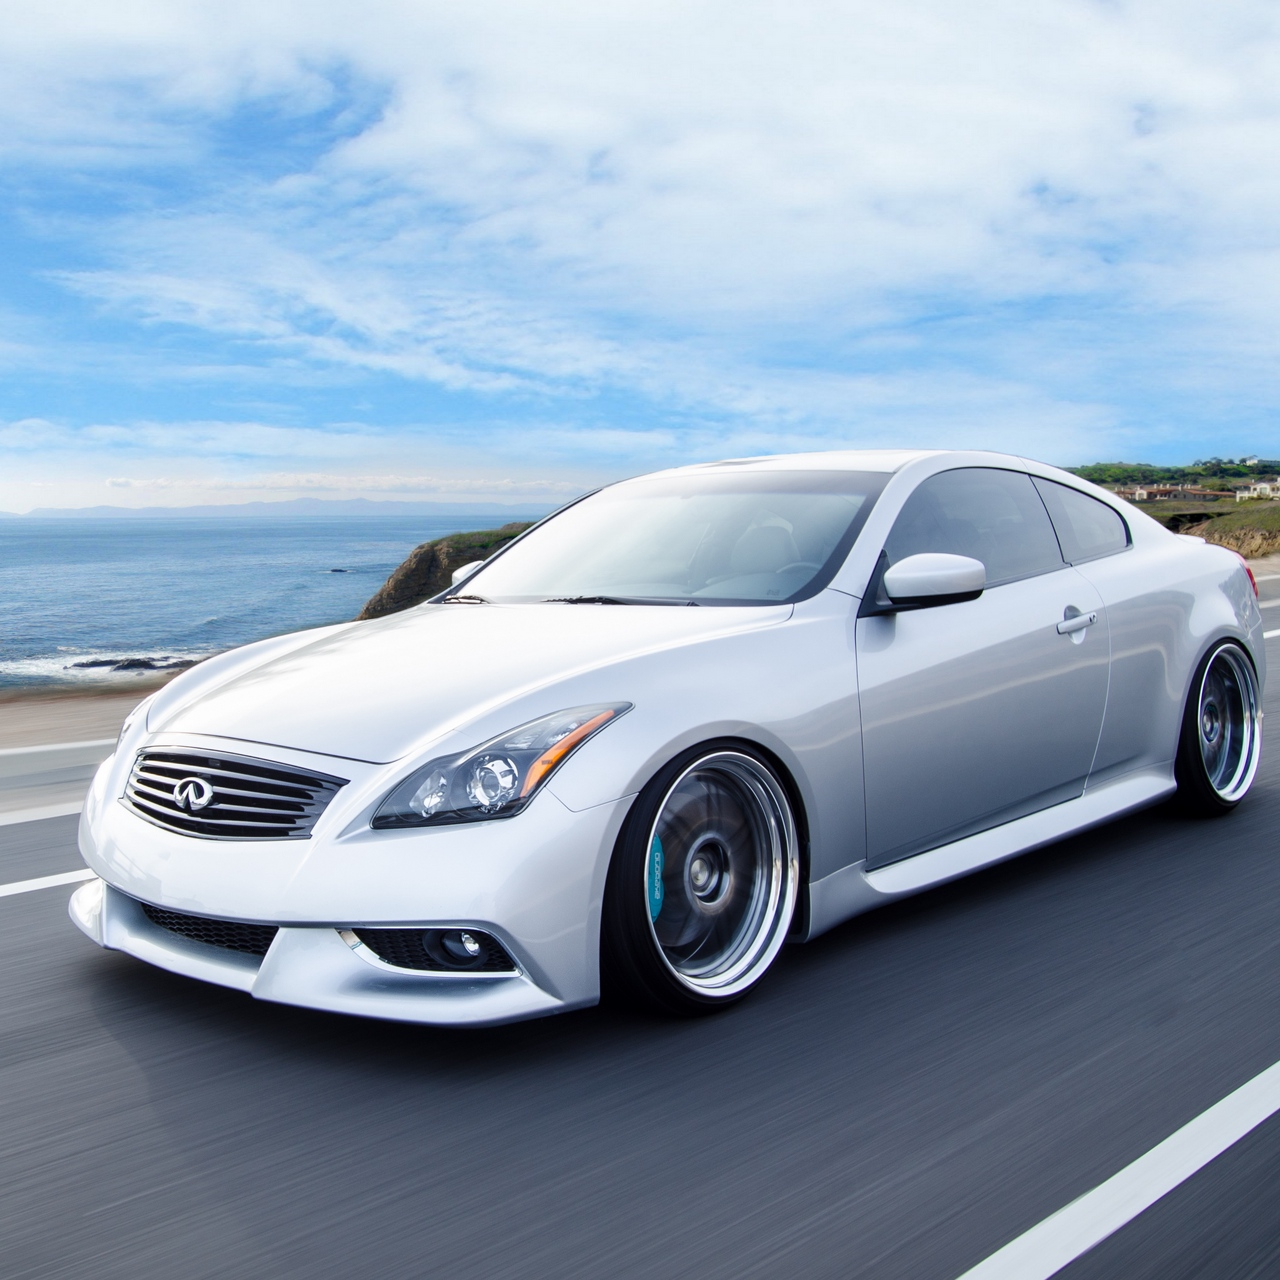 Wallpaper Infiniti G37 Coupe Side View Speed Infiniti G37 Coupe Iphone 1280x1280 Wallpaper Teahub Io